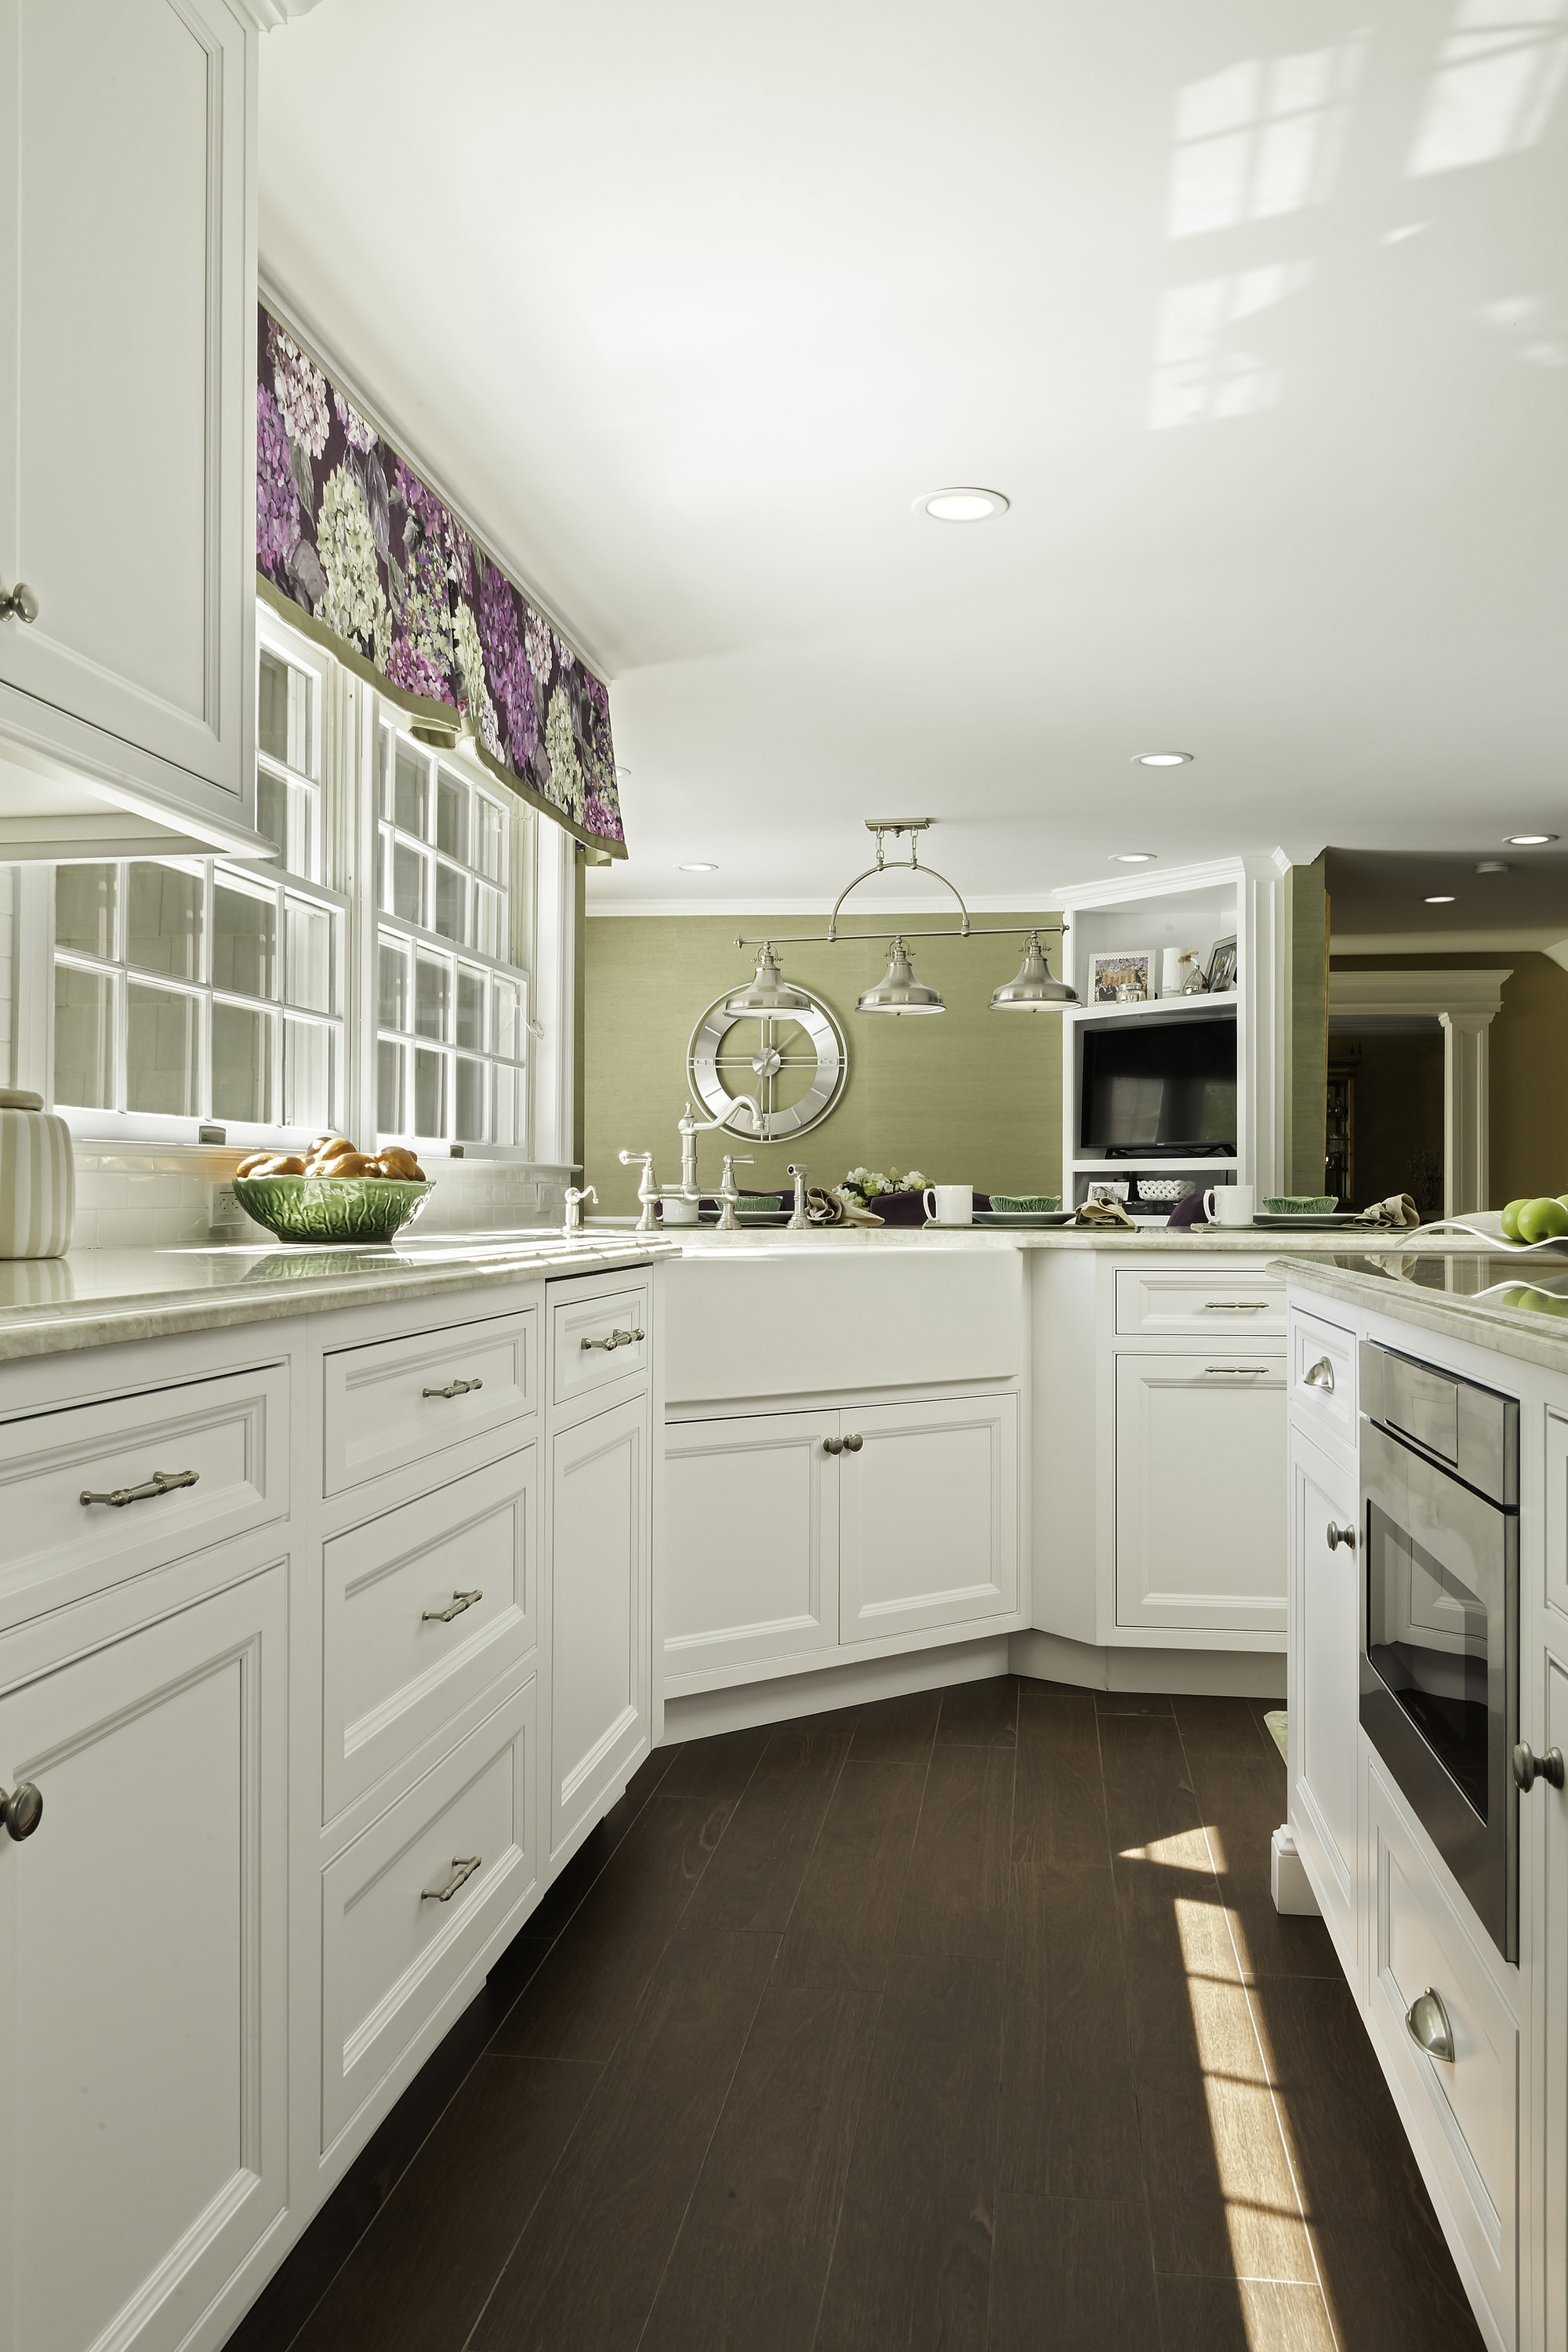 Transitional style kitchen with plenty of pull out drawer and cabinet